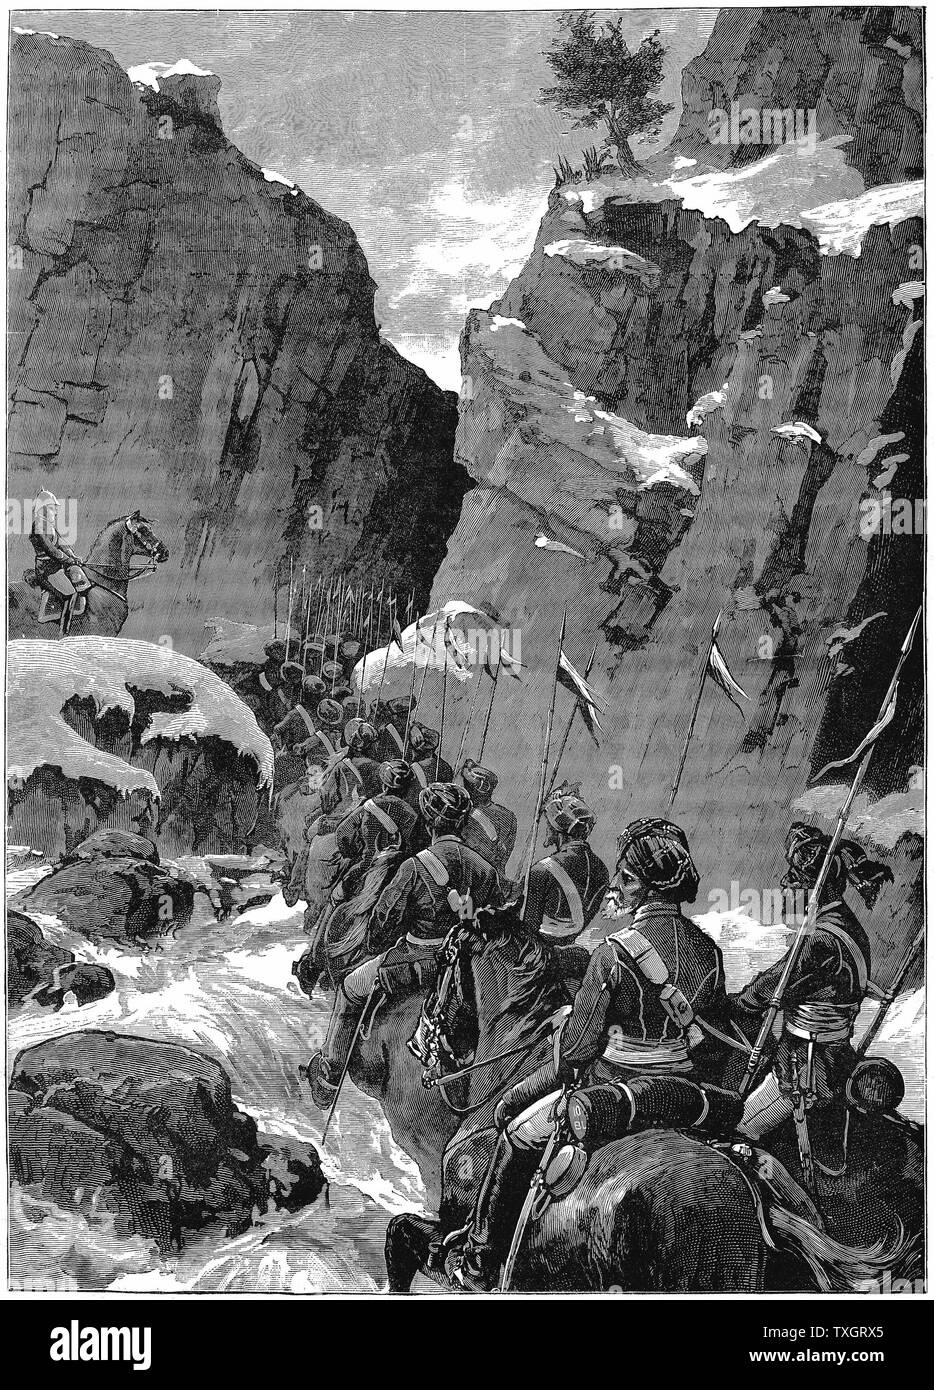 Second Anglo-Afghan War (1878-1880) 10th Bengal Lancers negotiating the Jugdulluk Pass supervised by a British officer December 1879 Wood engraving - Stock Image